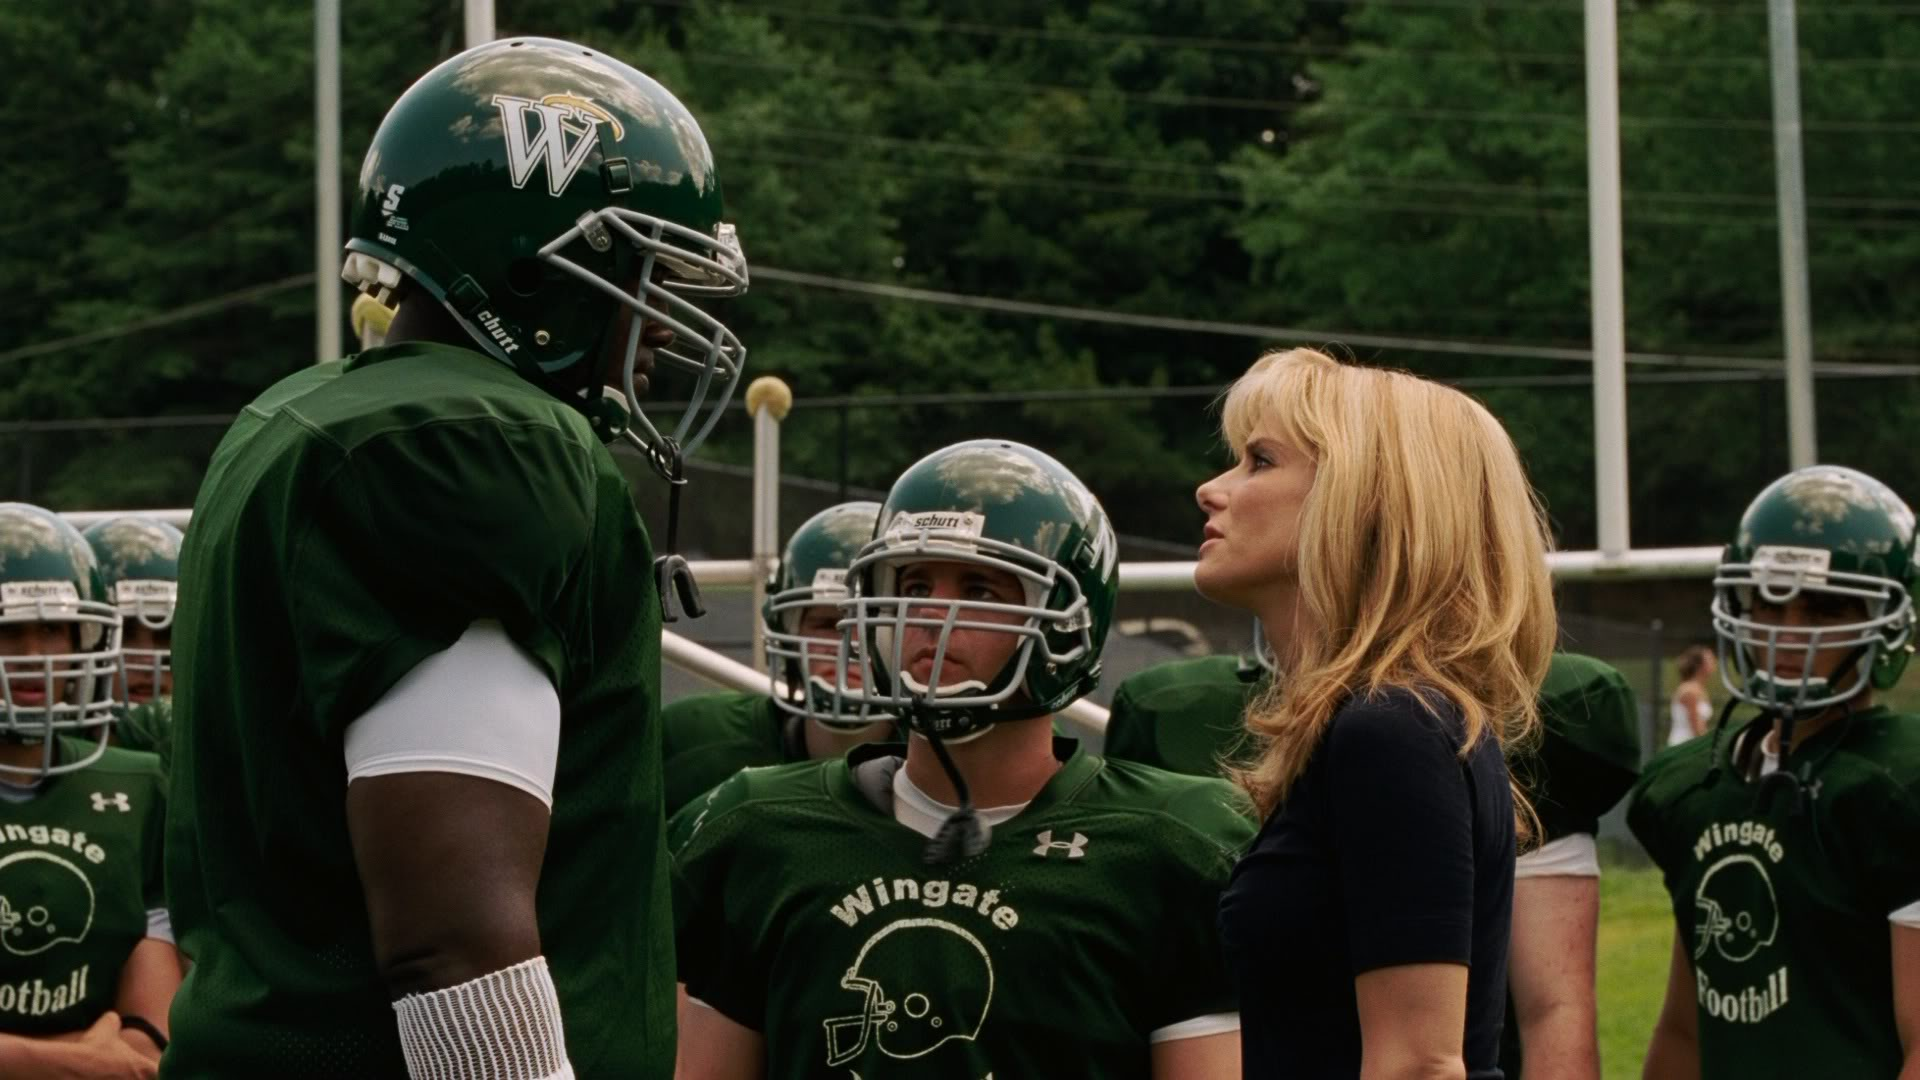 themes in the movie the blind side The themes of this film are: family family is a big theme to this film often times, the protagonist shows the affection and love to the family and this is a story of a changing person through the love of a family.